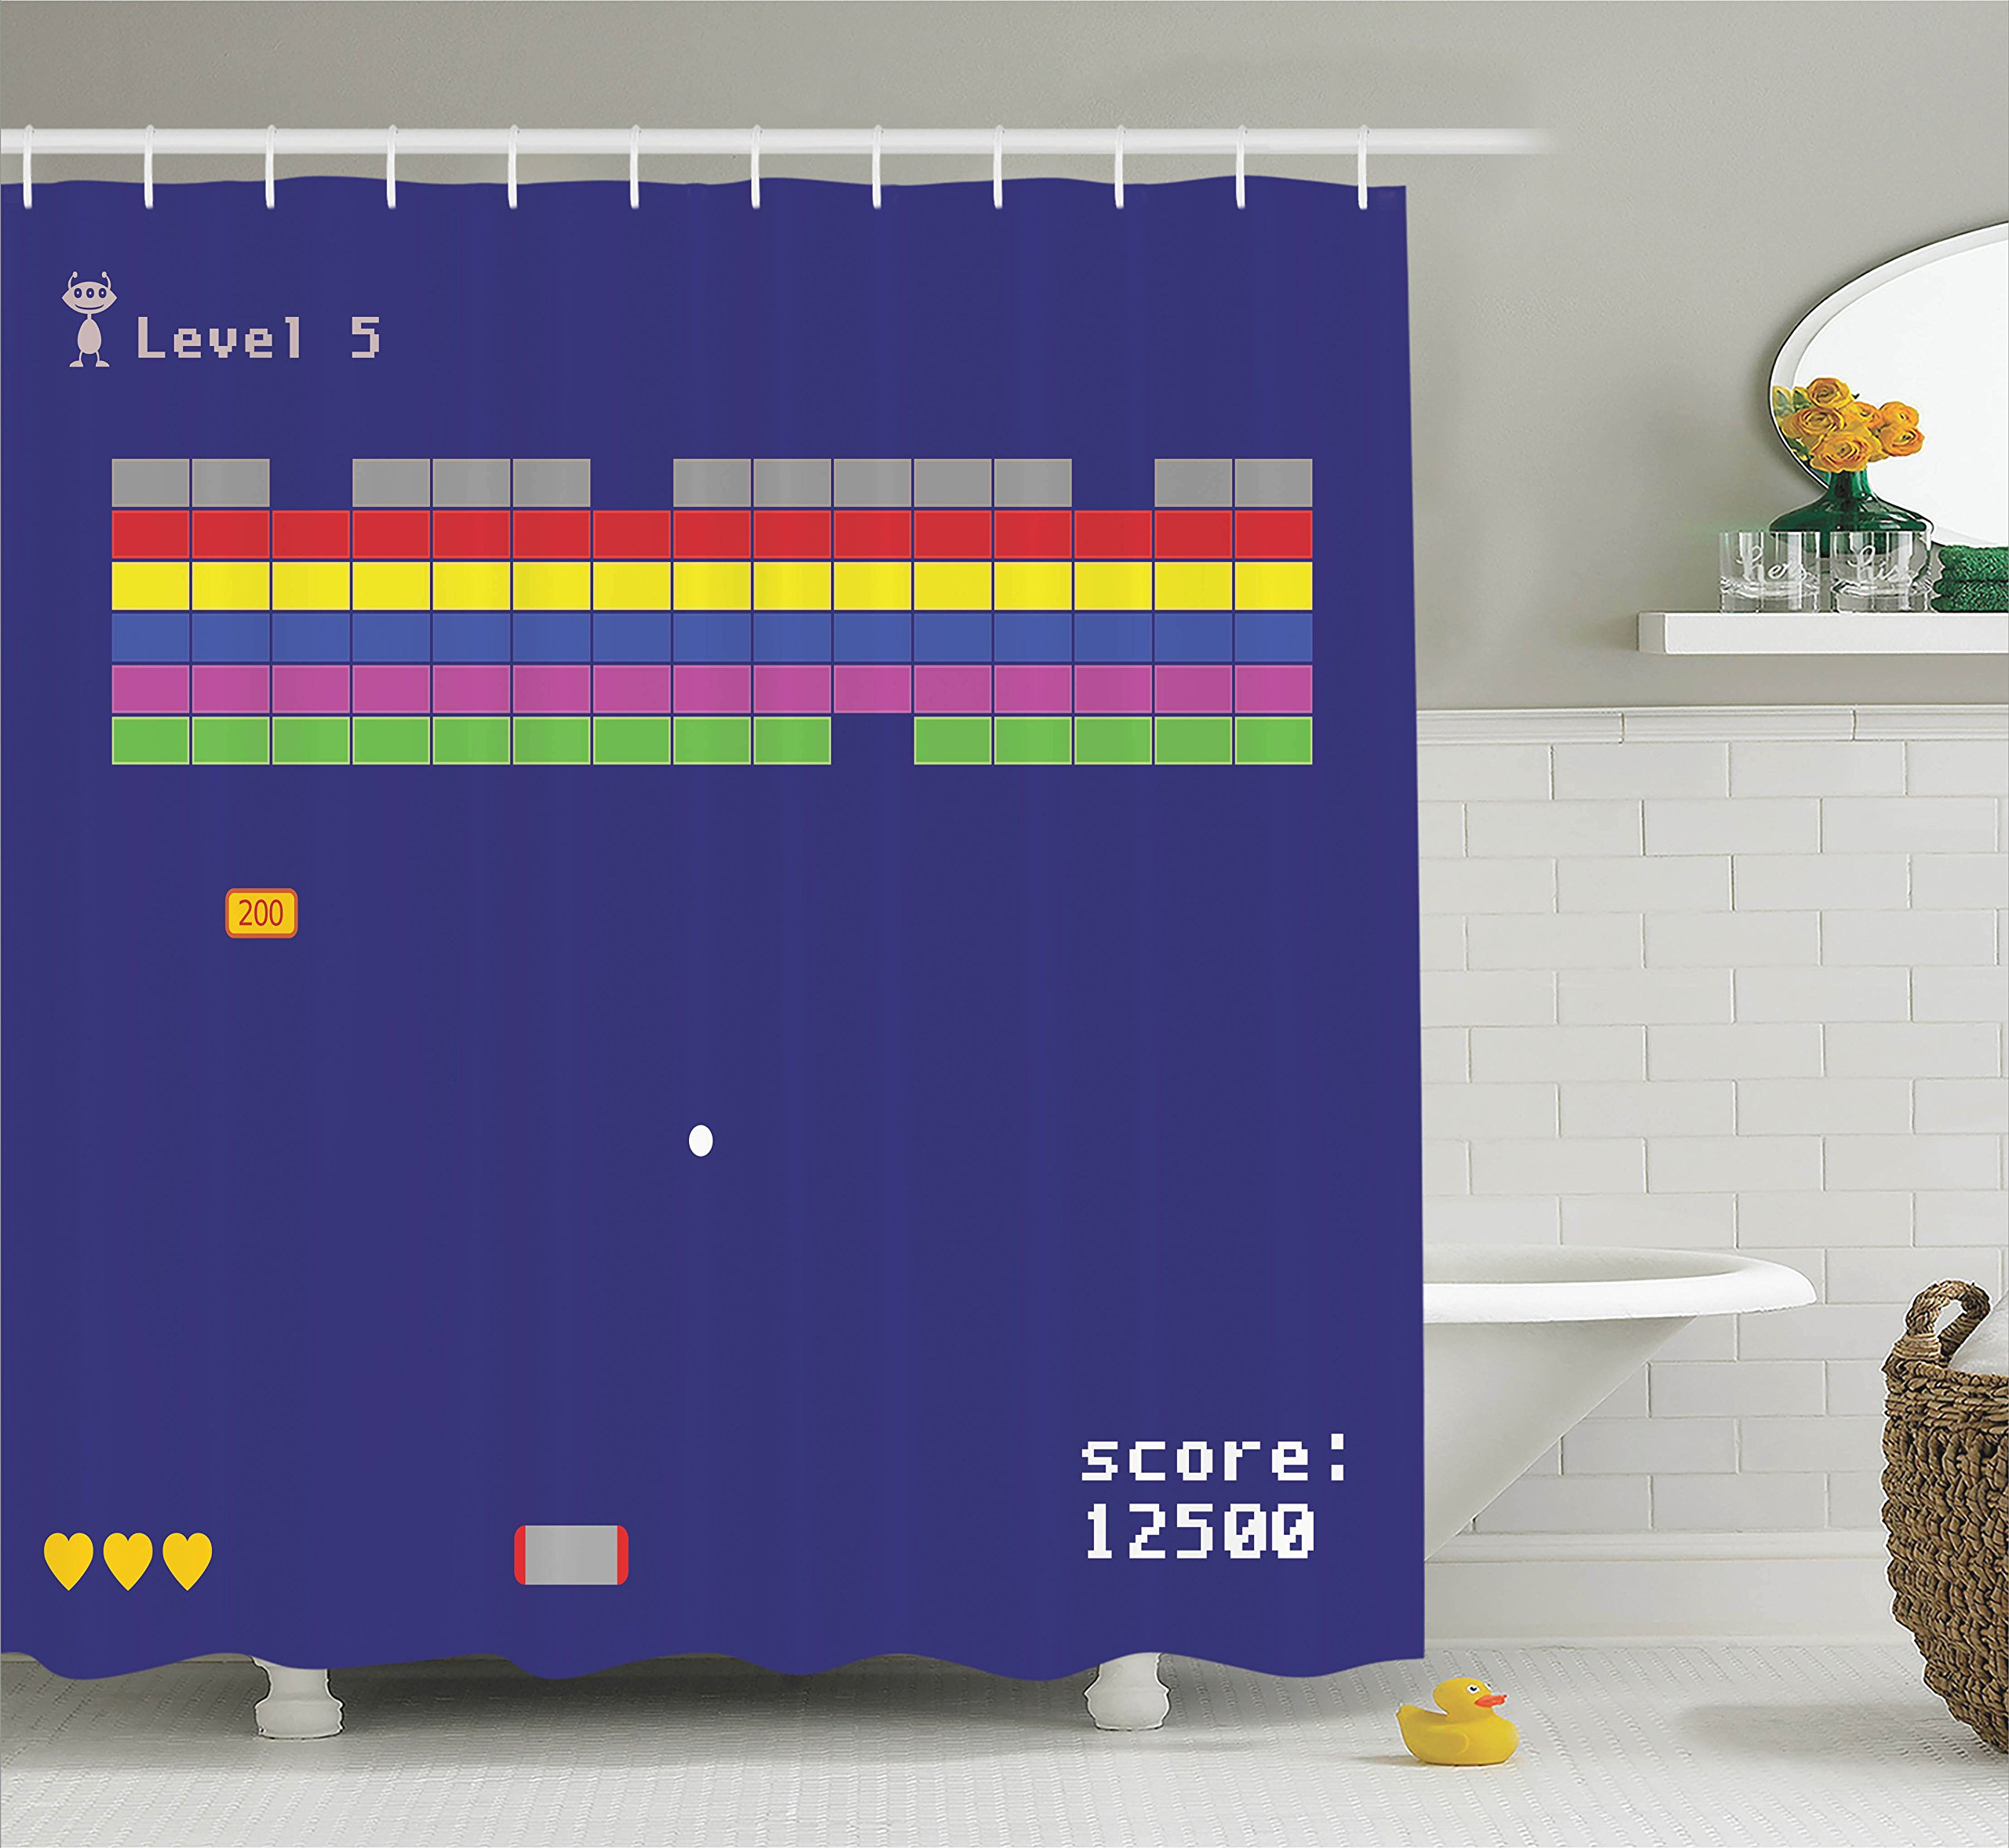 Bathroom Design Games: Arcade Decor: Amazon.com